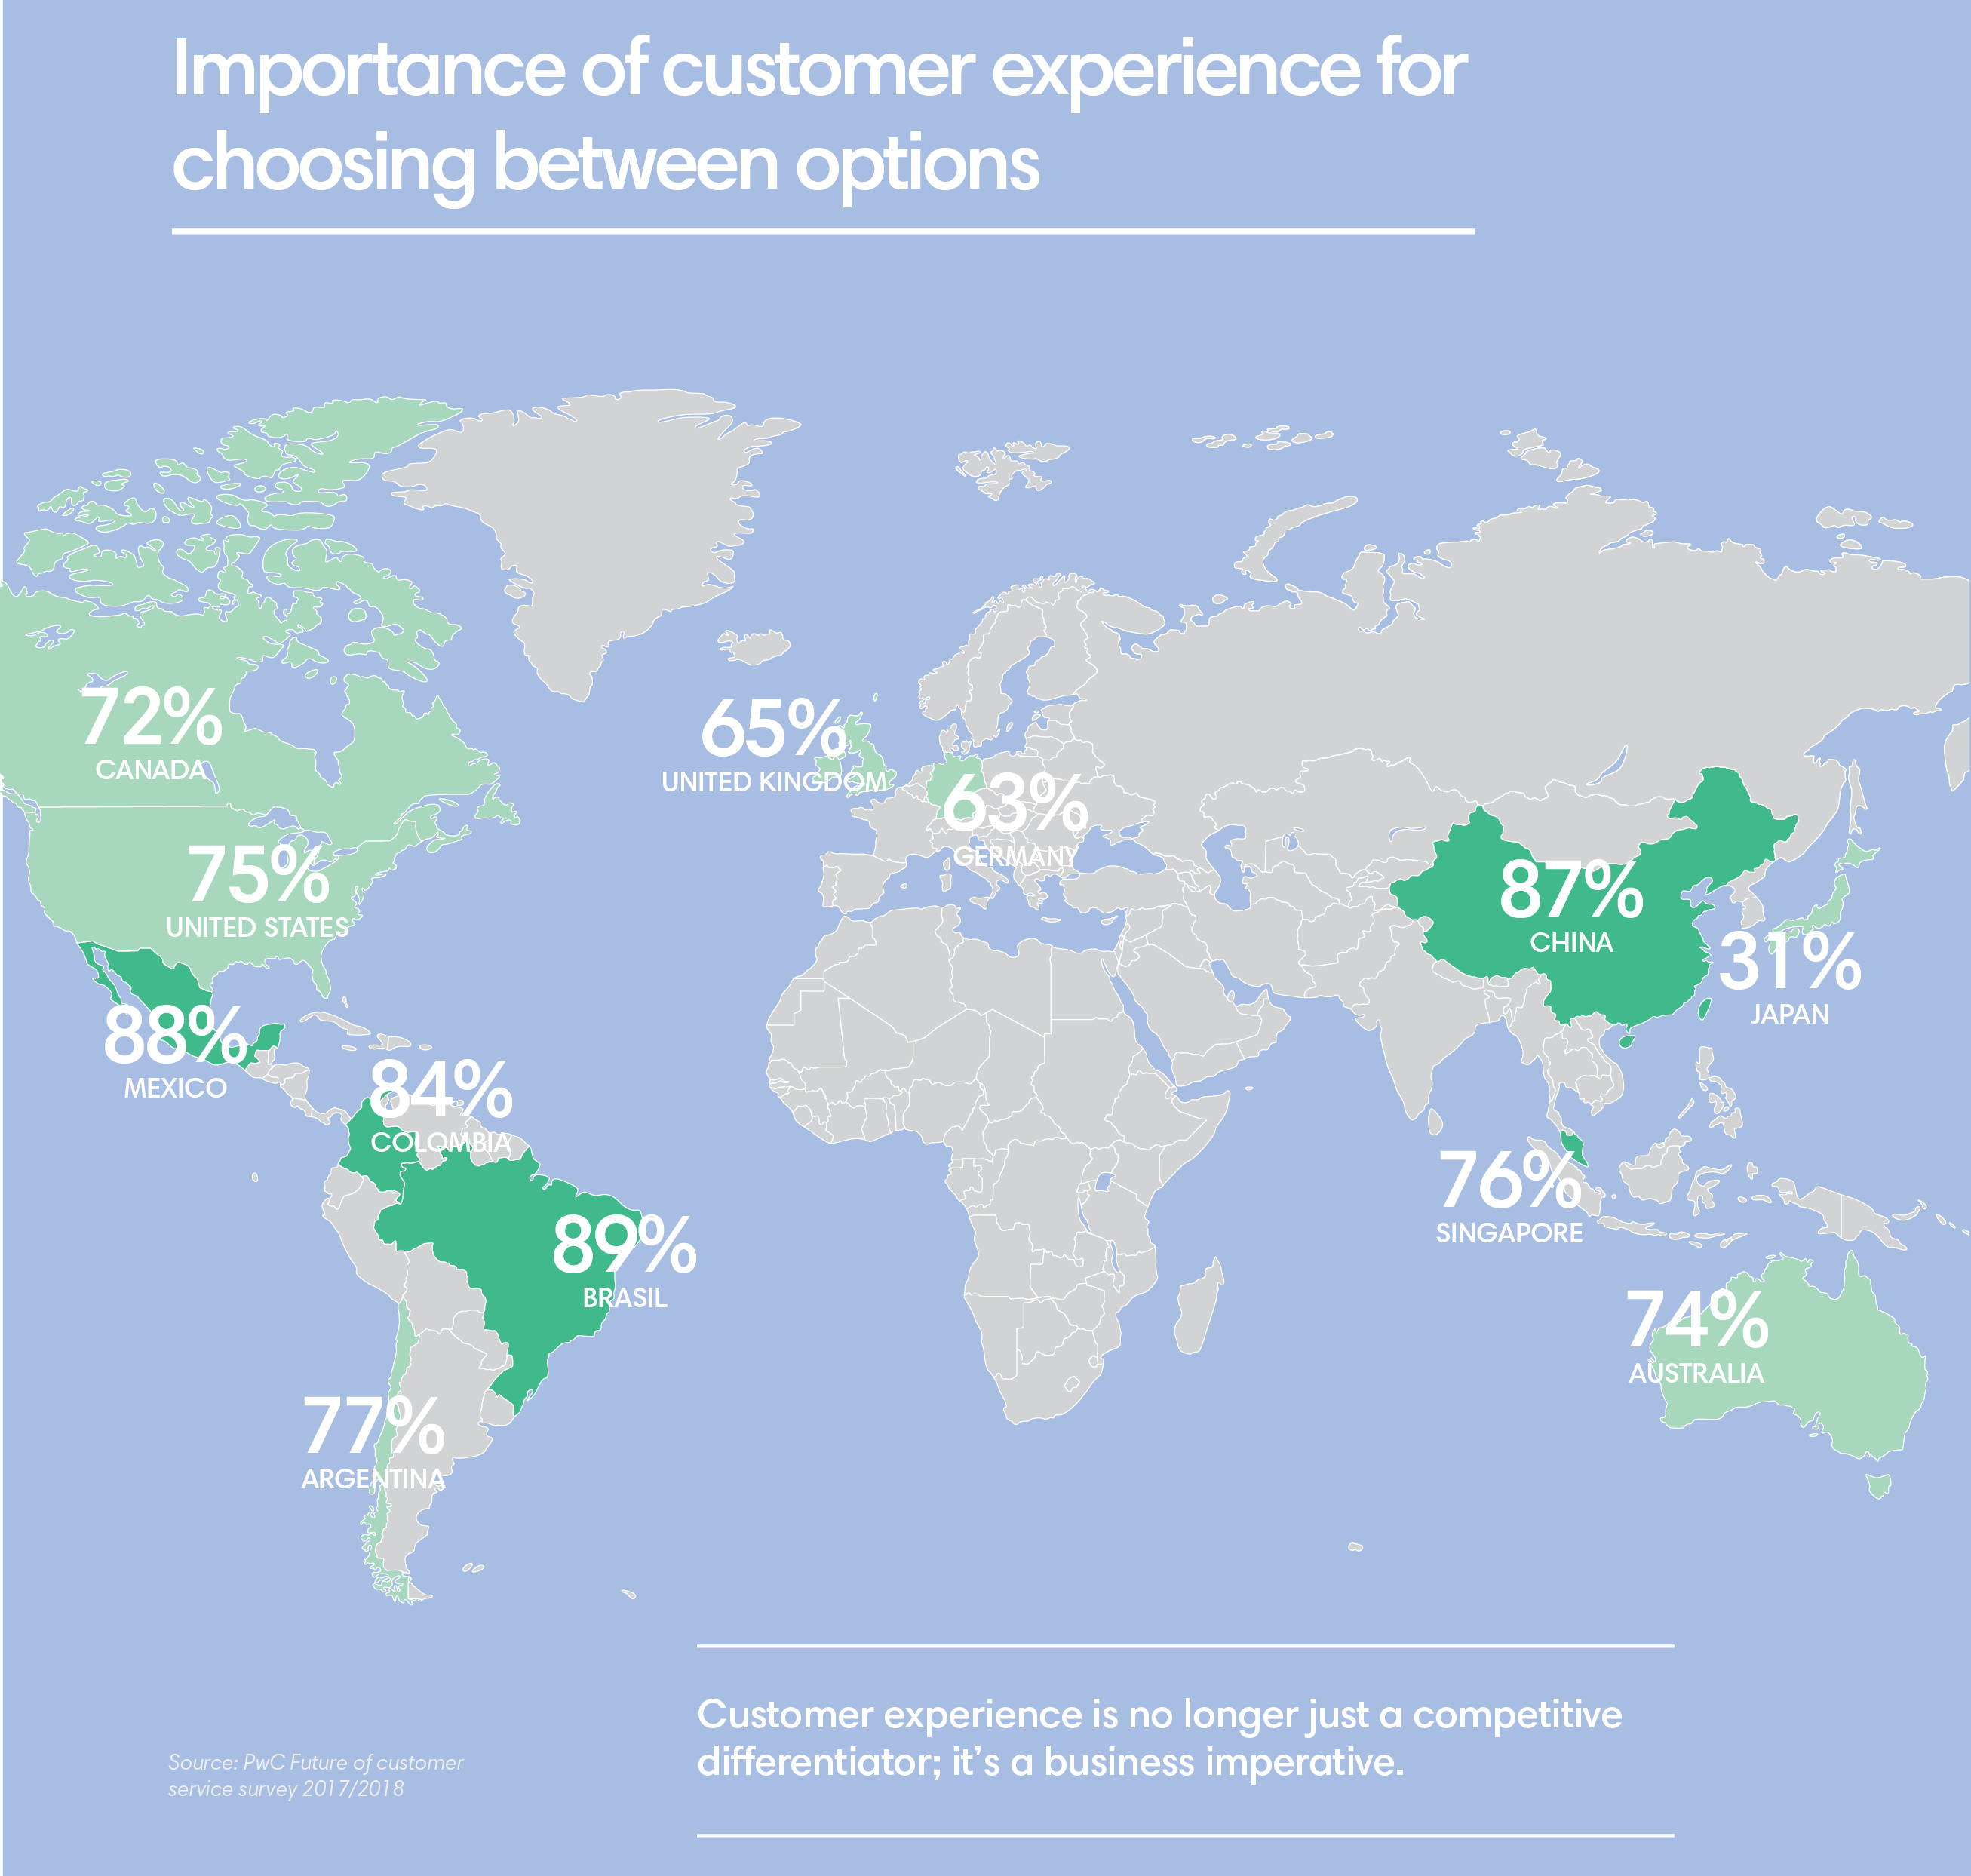 A chart showing the importance of customer experience when choosing between two options. In all major countries like Canada, the US, the UK, China and many more, this number sits at above 60%.